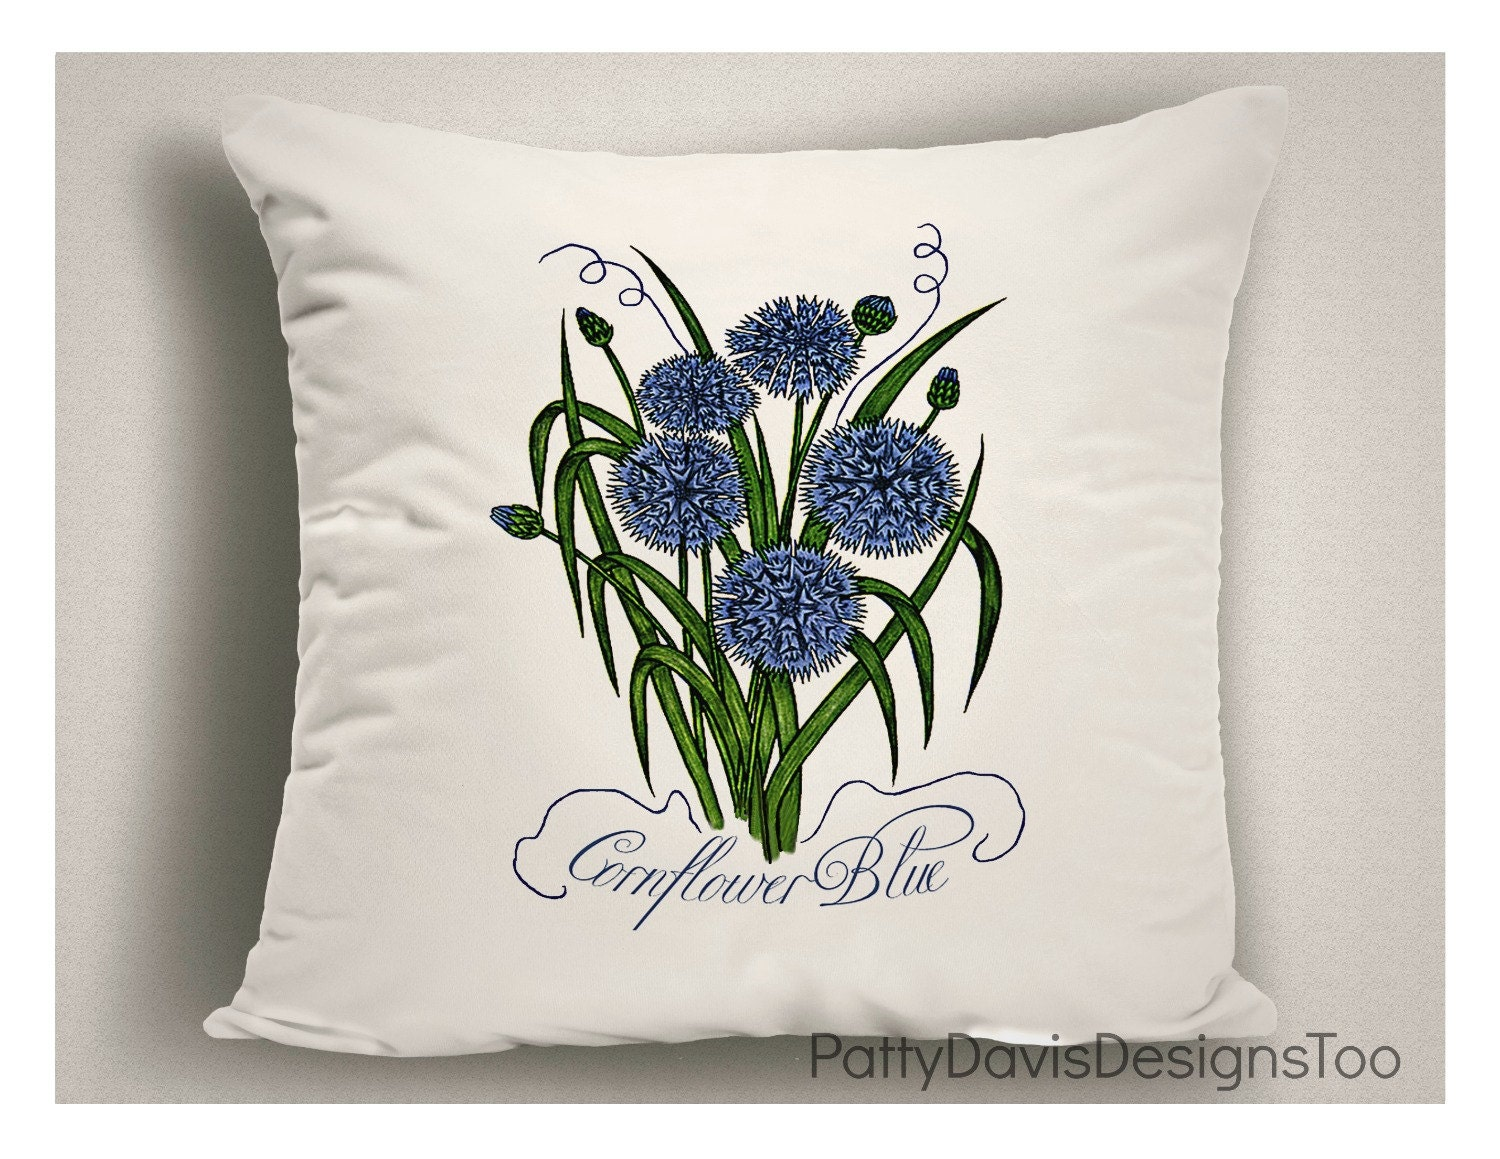 Throw Pillow Covers Made In Usa : Corn Flower Blue, Spring Pillows, Throw Pillows, Decorative Pillow, Spring Decor, Pillow Covers ...